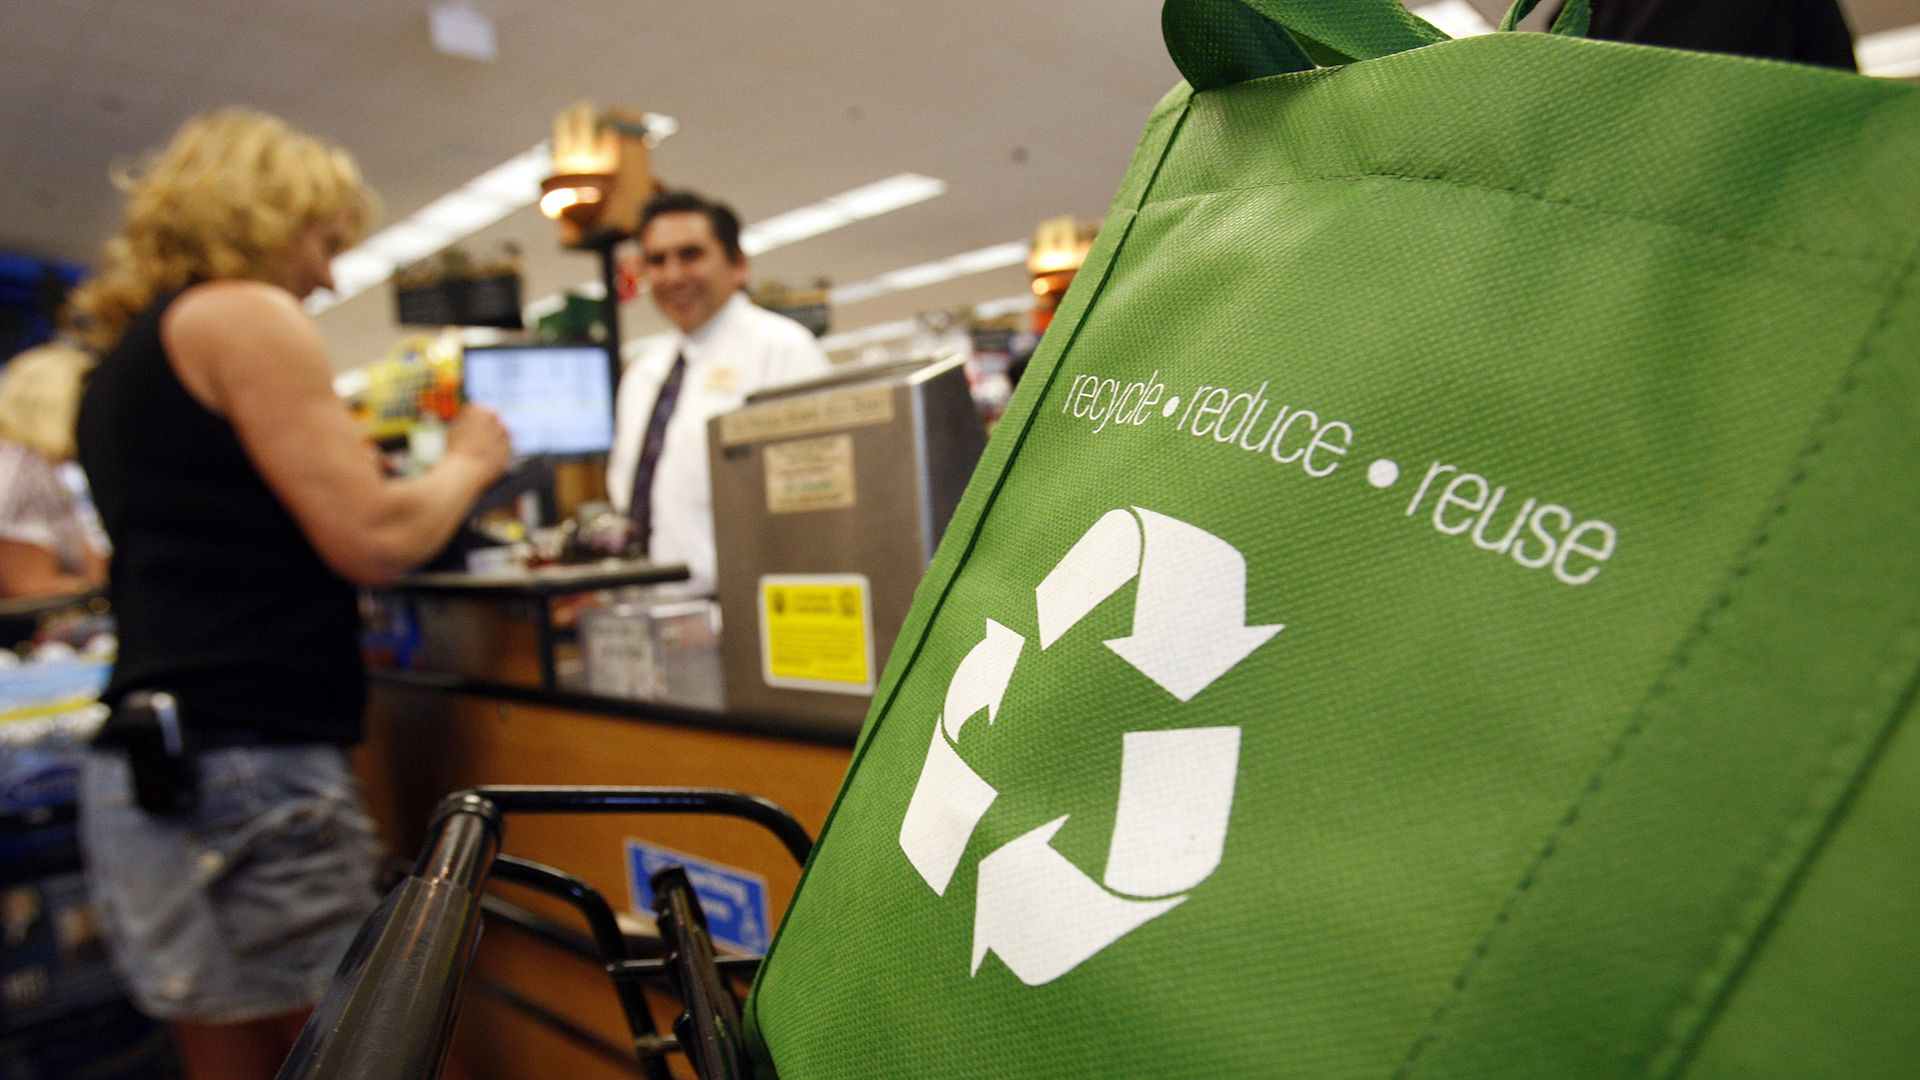 Woman checks out in grocery store in background, with reduce recycle reuse green bag in front.